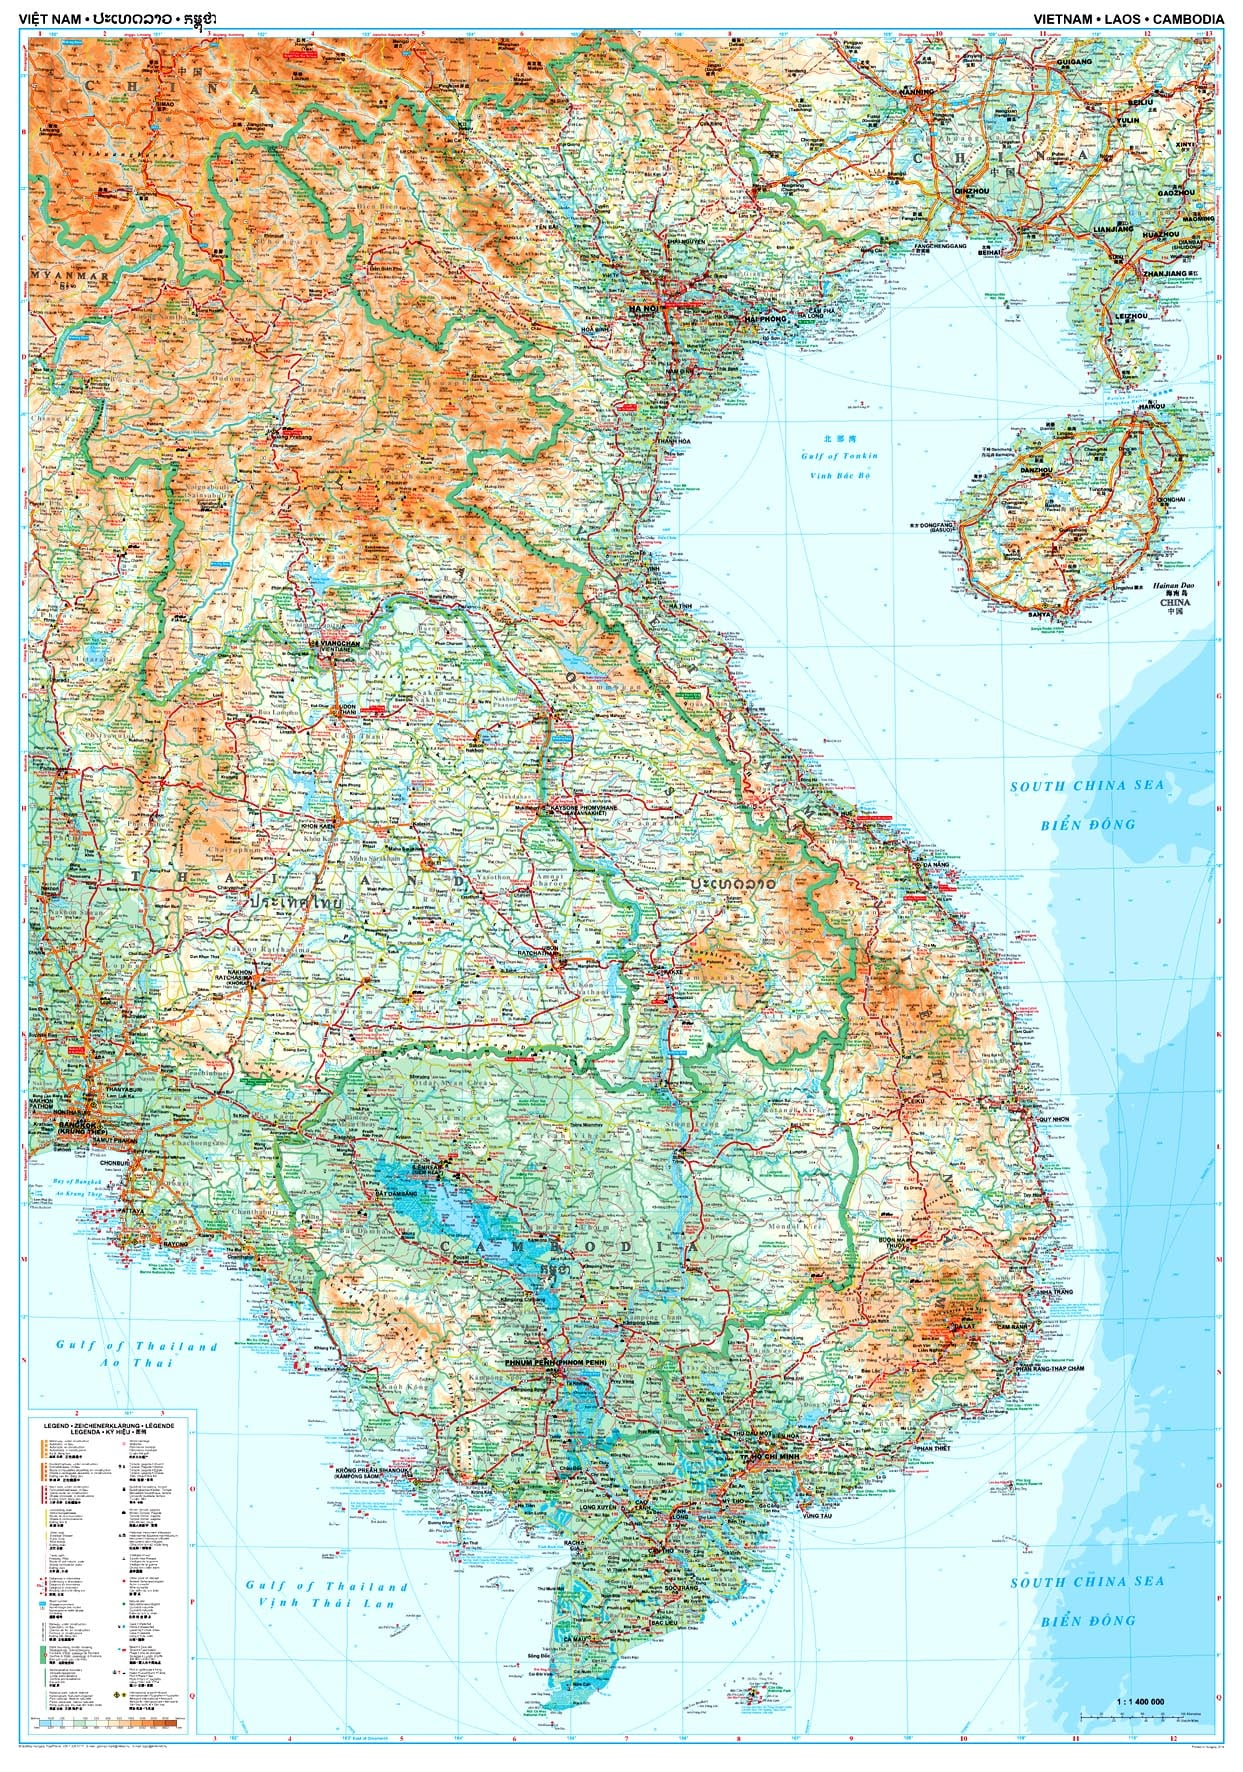 Vietnam Laos And Cambodia Wall Map 87 X 124cm Asia Countries Maps